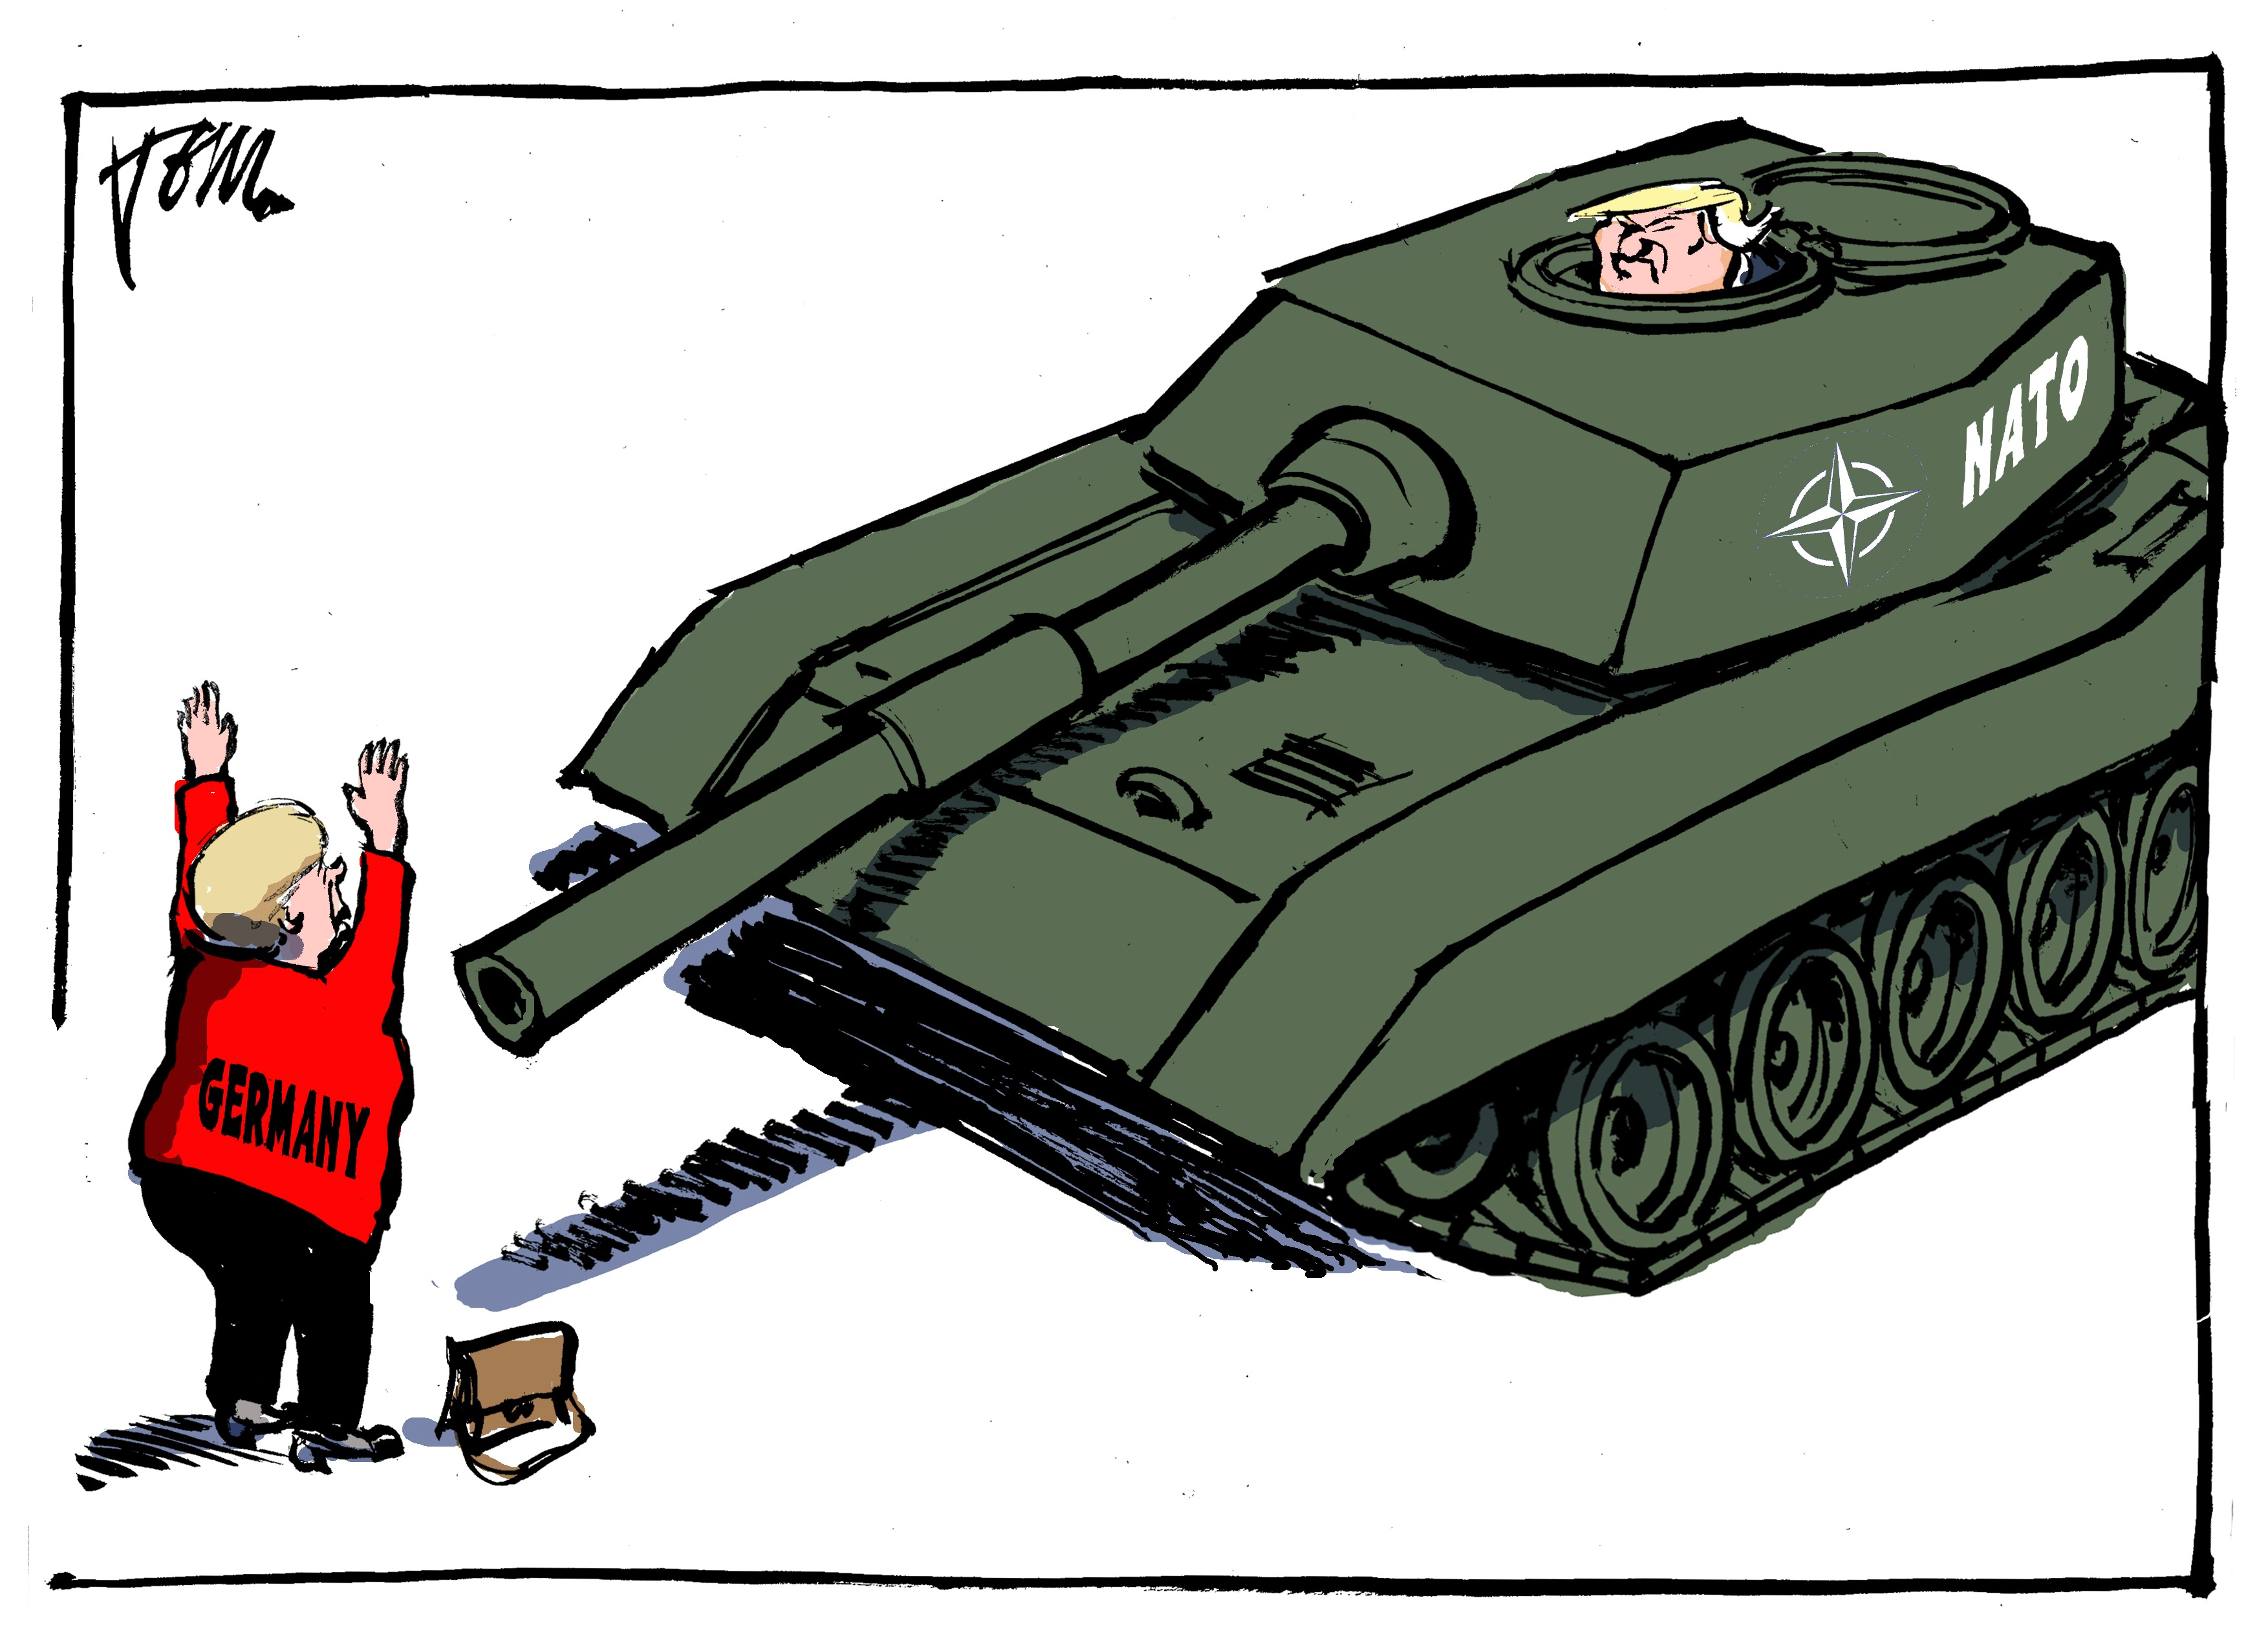 A take-off on the famous photograph of Tank Man who peacefully confronted a Chinese tank during the protests in Tiananmen Square in 1989. In this image, it's German Chancellor Angela Merkel appealing to a NATO tank driven by President Trum